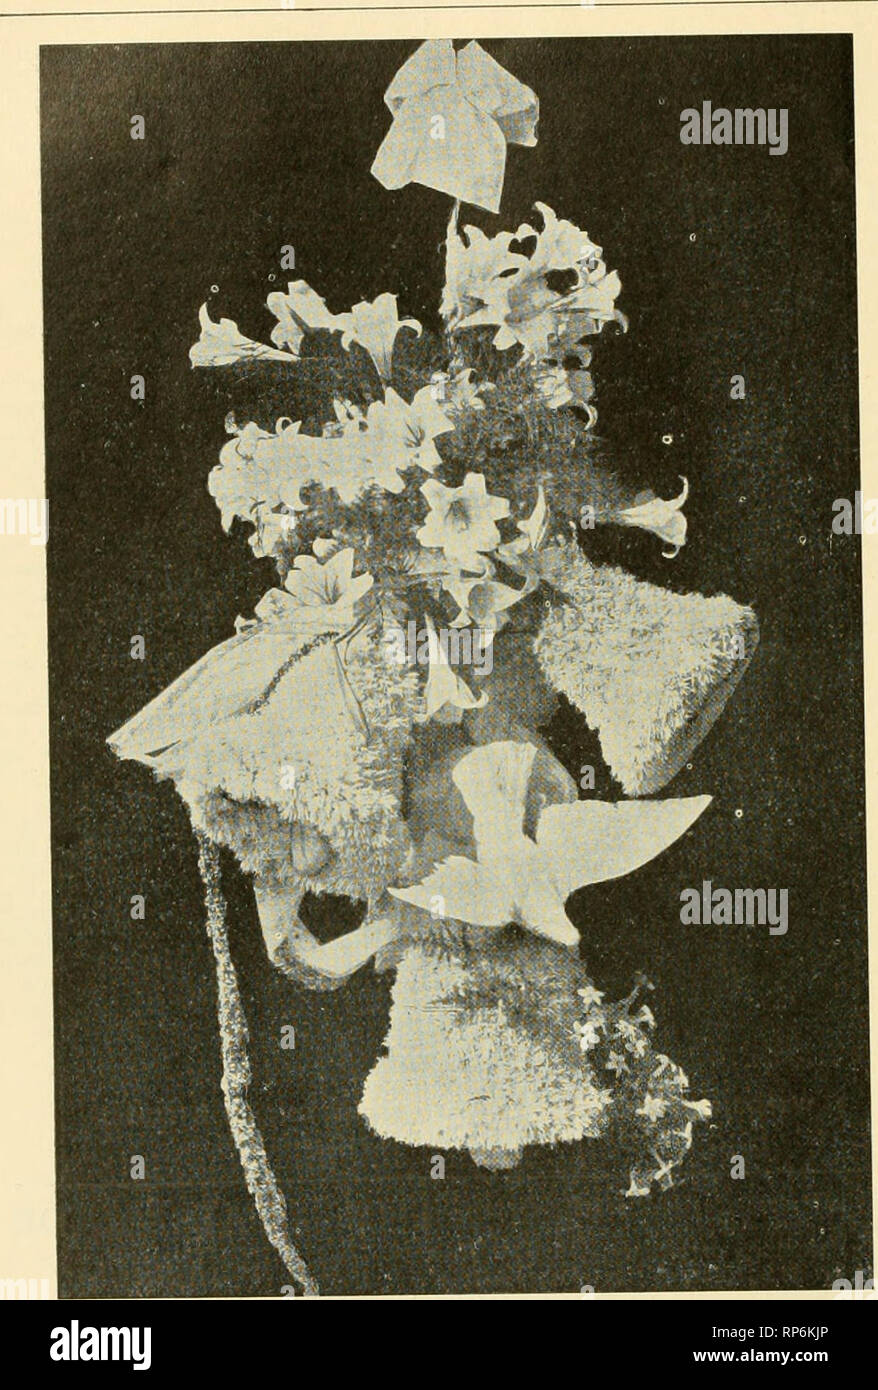 . The American florist : a weekly journal for the trade. Floriculture; Florists. 808 The American Florist. May II,. WEDDING DECORATIONS BY WILLS & SEGAR, LONDON, ENGLAND. BpUs used ill llic- ciMitiT of ;i b.iwi-r of p:ilnis iiiid f.Tiis. and flowers. The idea should be to cre- ate the best effect possible with plants of suitable habit not to reproduce a wholesale flower store remarkable only for the quantity and the money value of the material used. At the Chlcag:o Parks. V.SHINGT0N PARK. The bedding plant problem at Wash- ington park is a pretty serious one, about 125,000 being annually - Stock Image